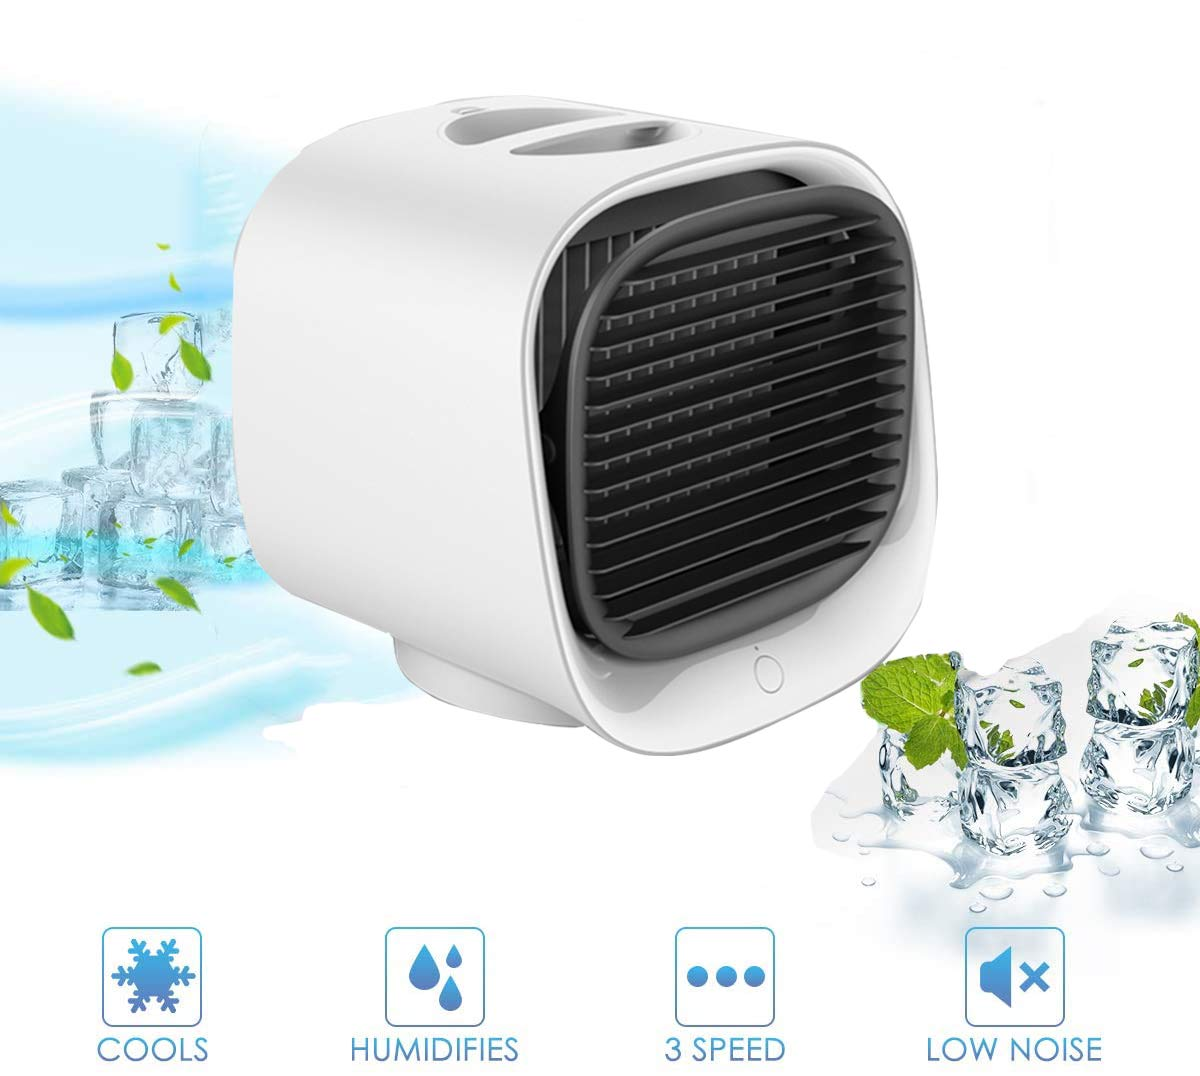 Personal Air Conditioner Fan Purifier Humidifier Desktop Cooling Fan with 3 Speeds Mini Portable Air Cooler Super Quiet Humidifier Misting Fan for Home Office Bedroom Outdoors Travel (Black)